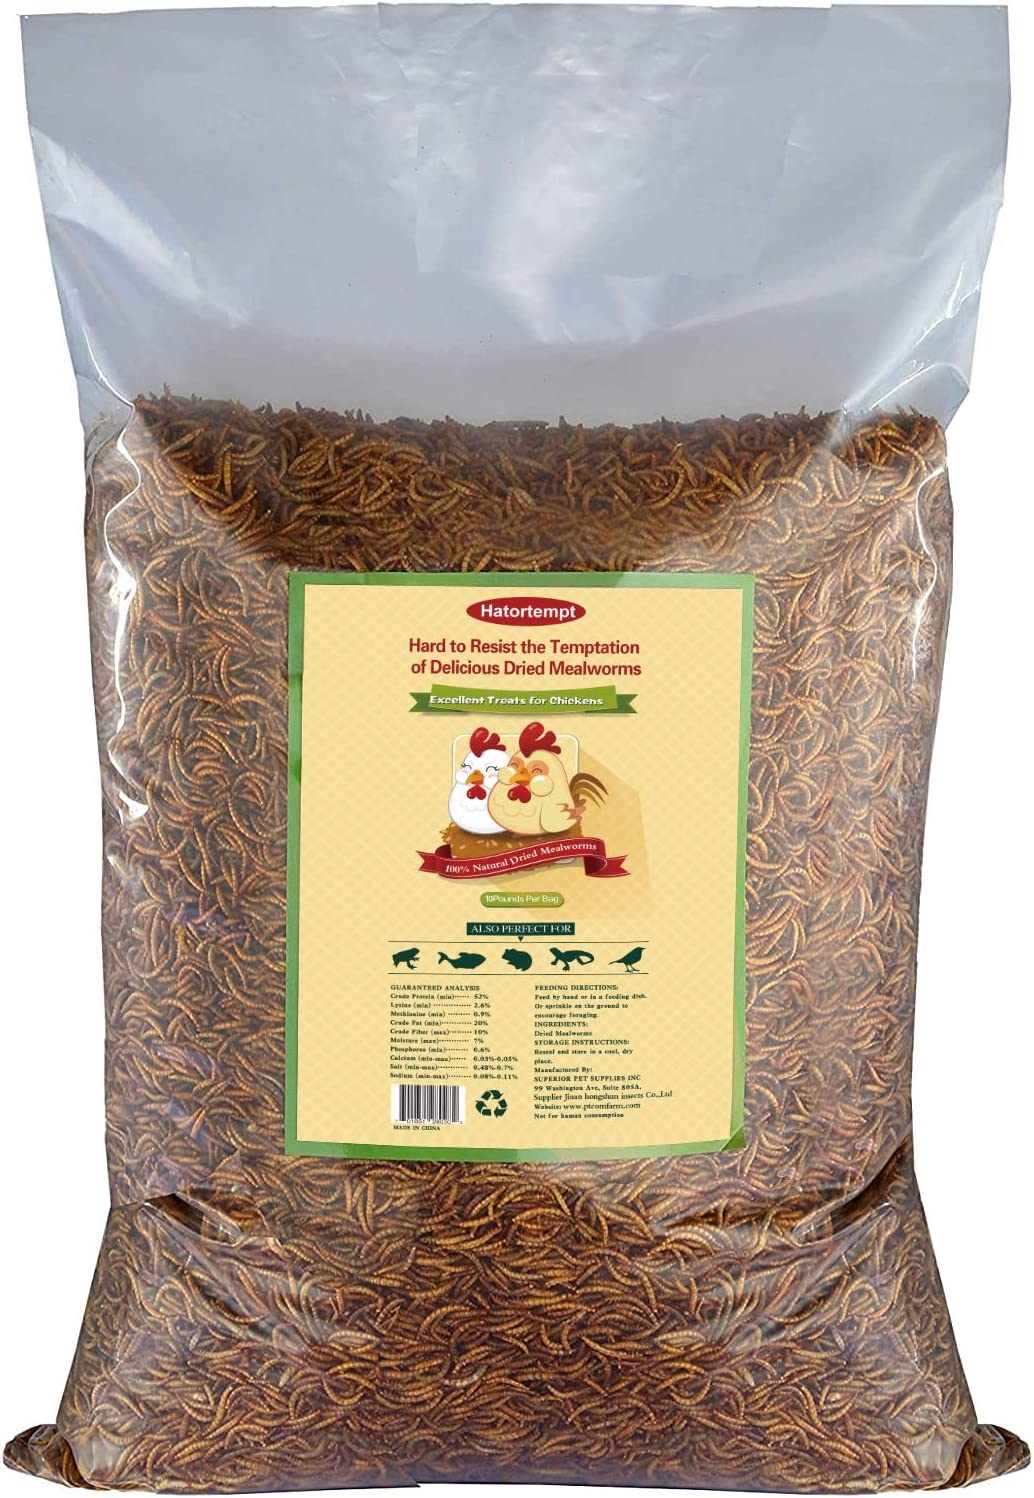 10lbs Bulk Non-GMO Dried Mealworms for Reptile, Tortoise ; Amphibian,Lizard ;Wild Birds; Chichens; Duck etc 71PqH2b12cL